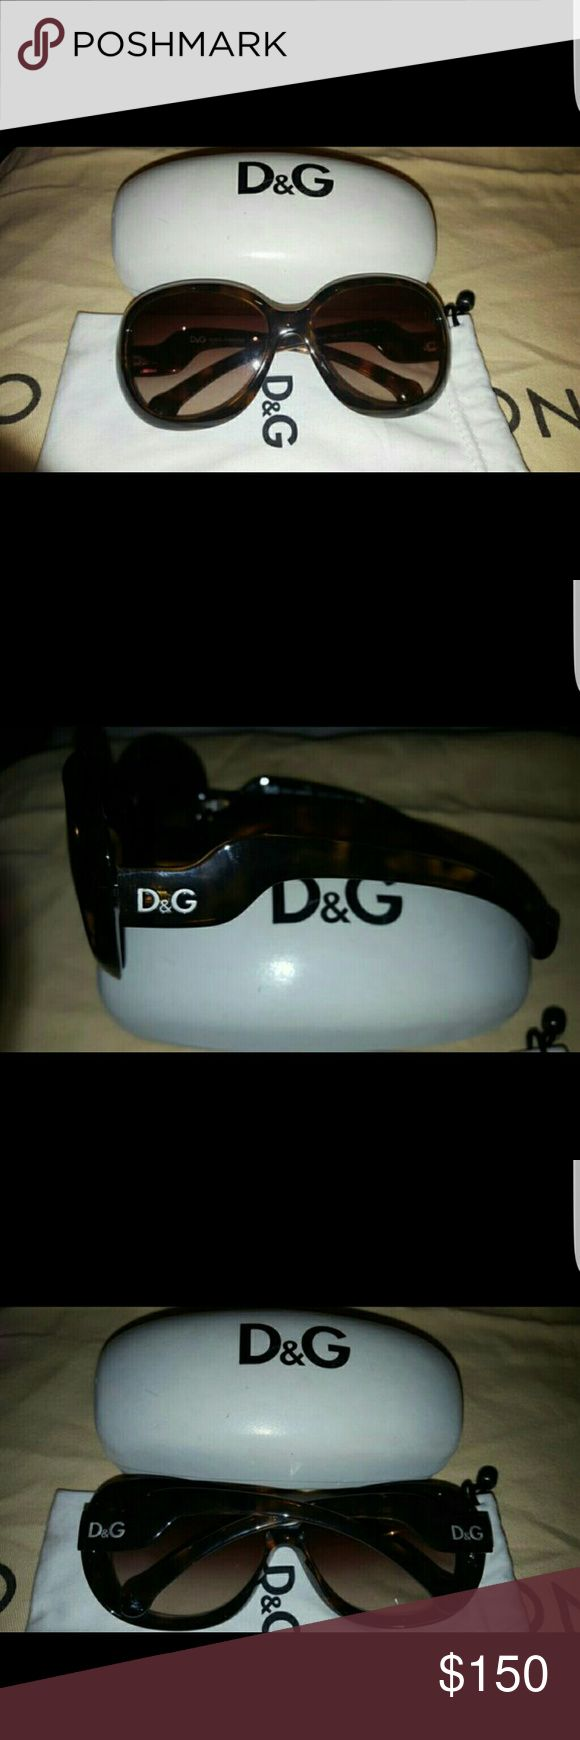 Authentic Dolce & Gabbana Sunglasses Authentic Dolce & Gabbana Sunglasses comes with dust bag and case! Only wore a handful of times. Name brand stamped to guarantee authenticity.   Get ready for spring with these beauties at an awesome price. 😍😍 Dolce & Gabbana Accessories Sunglasses